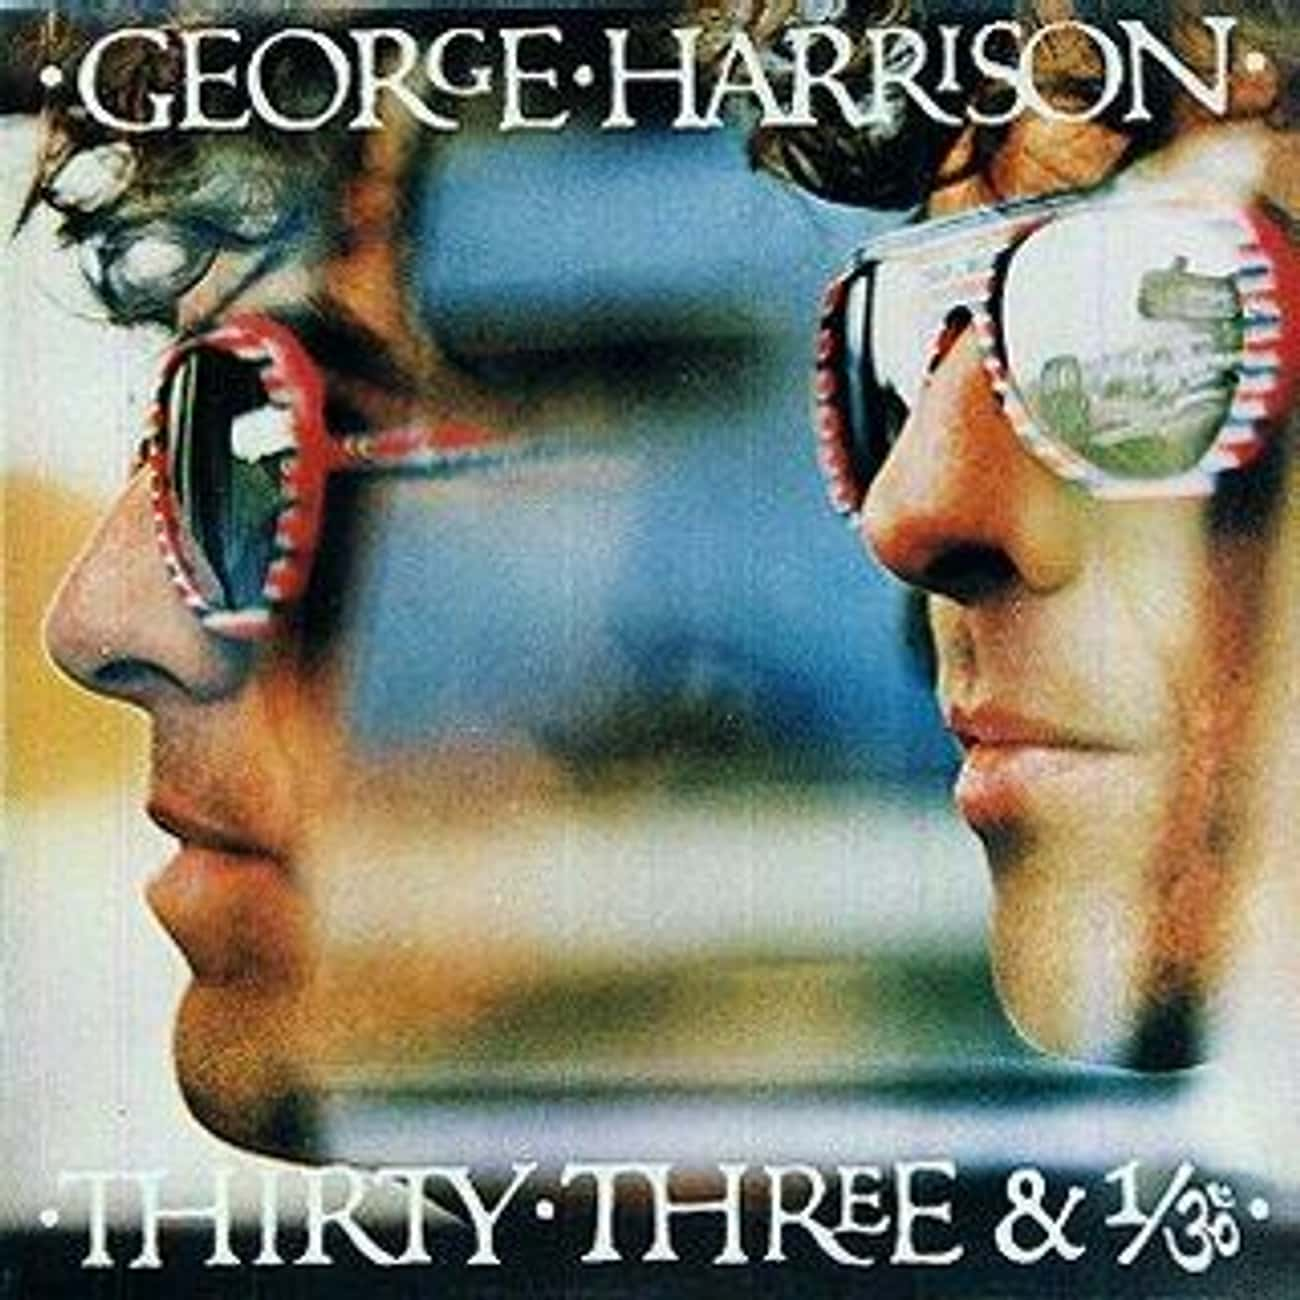 Thirty Three & 1/ॐ is listed (or ranked) 2 on the list The Best George Harrison Albums of All Time